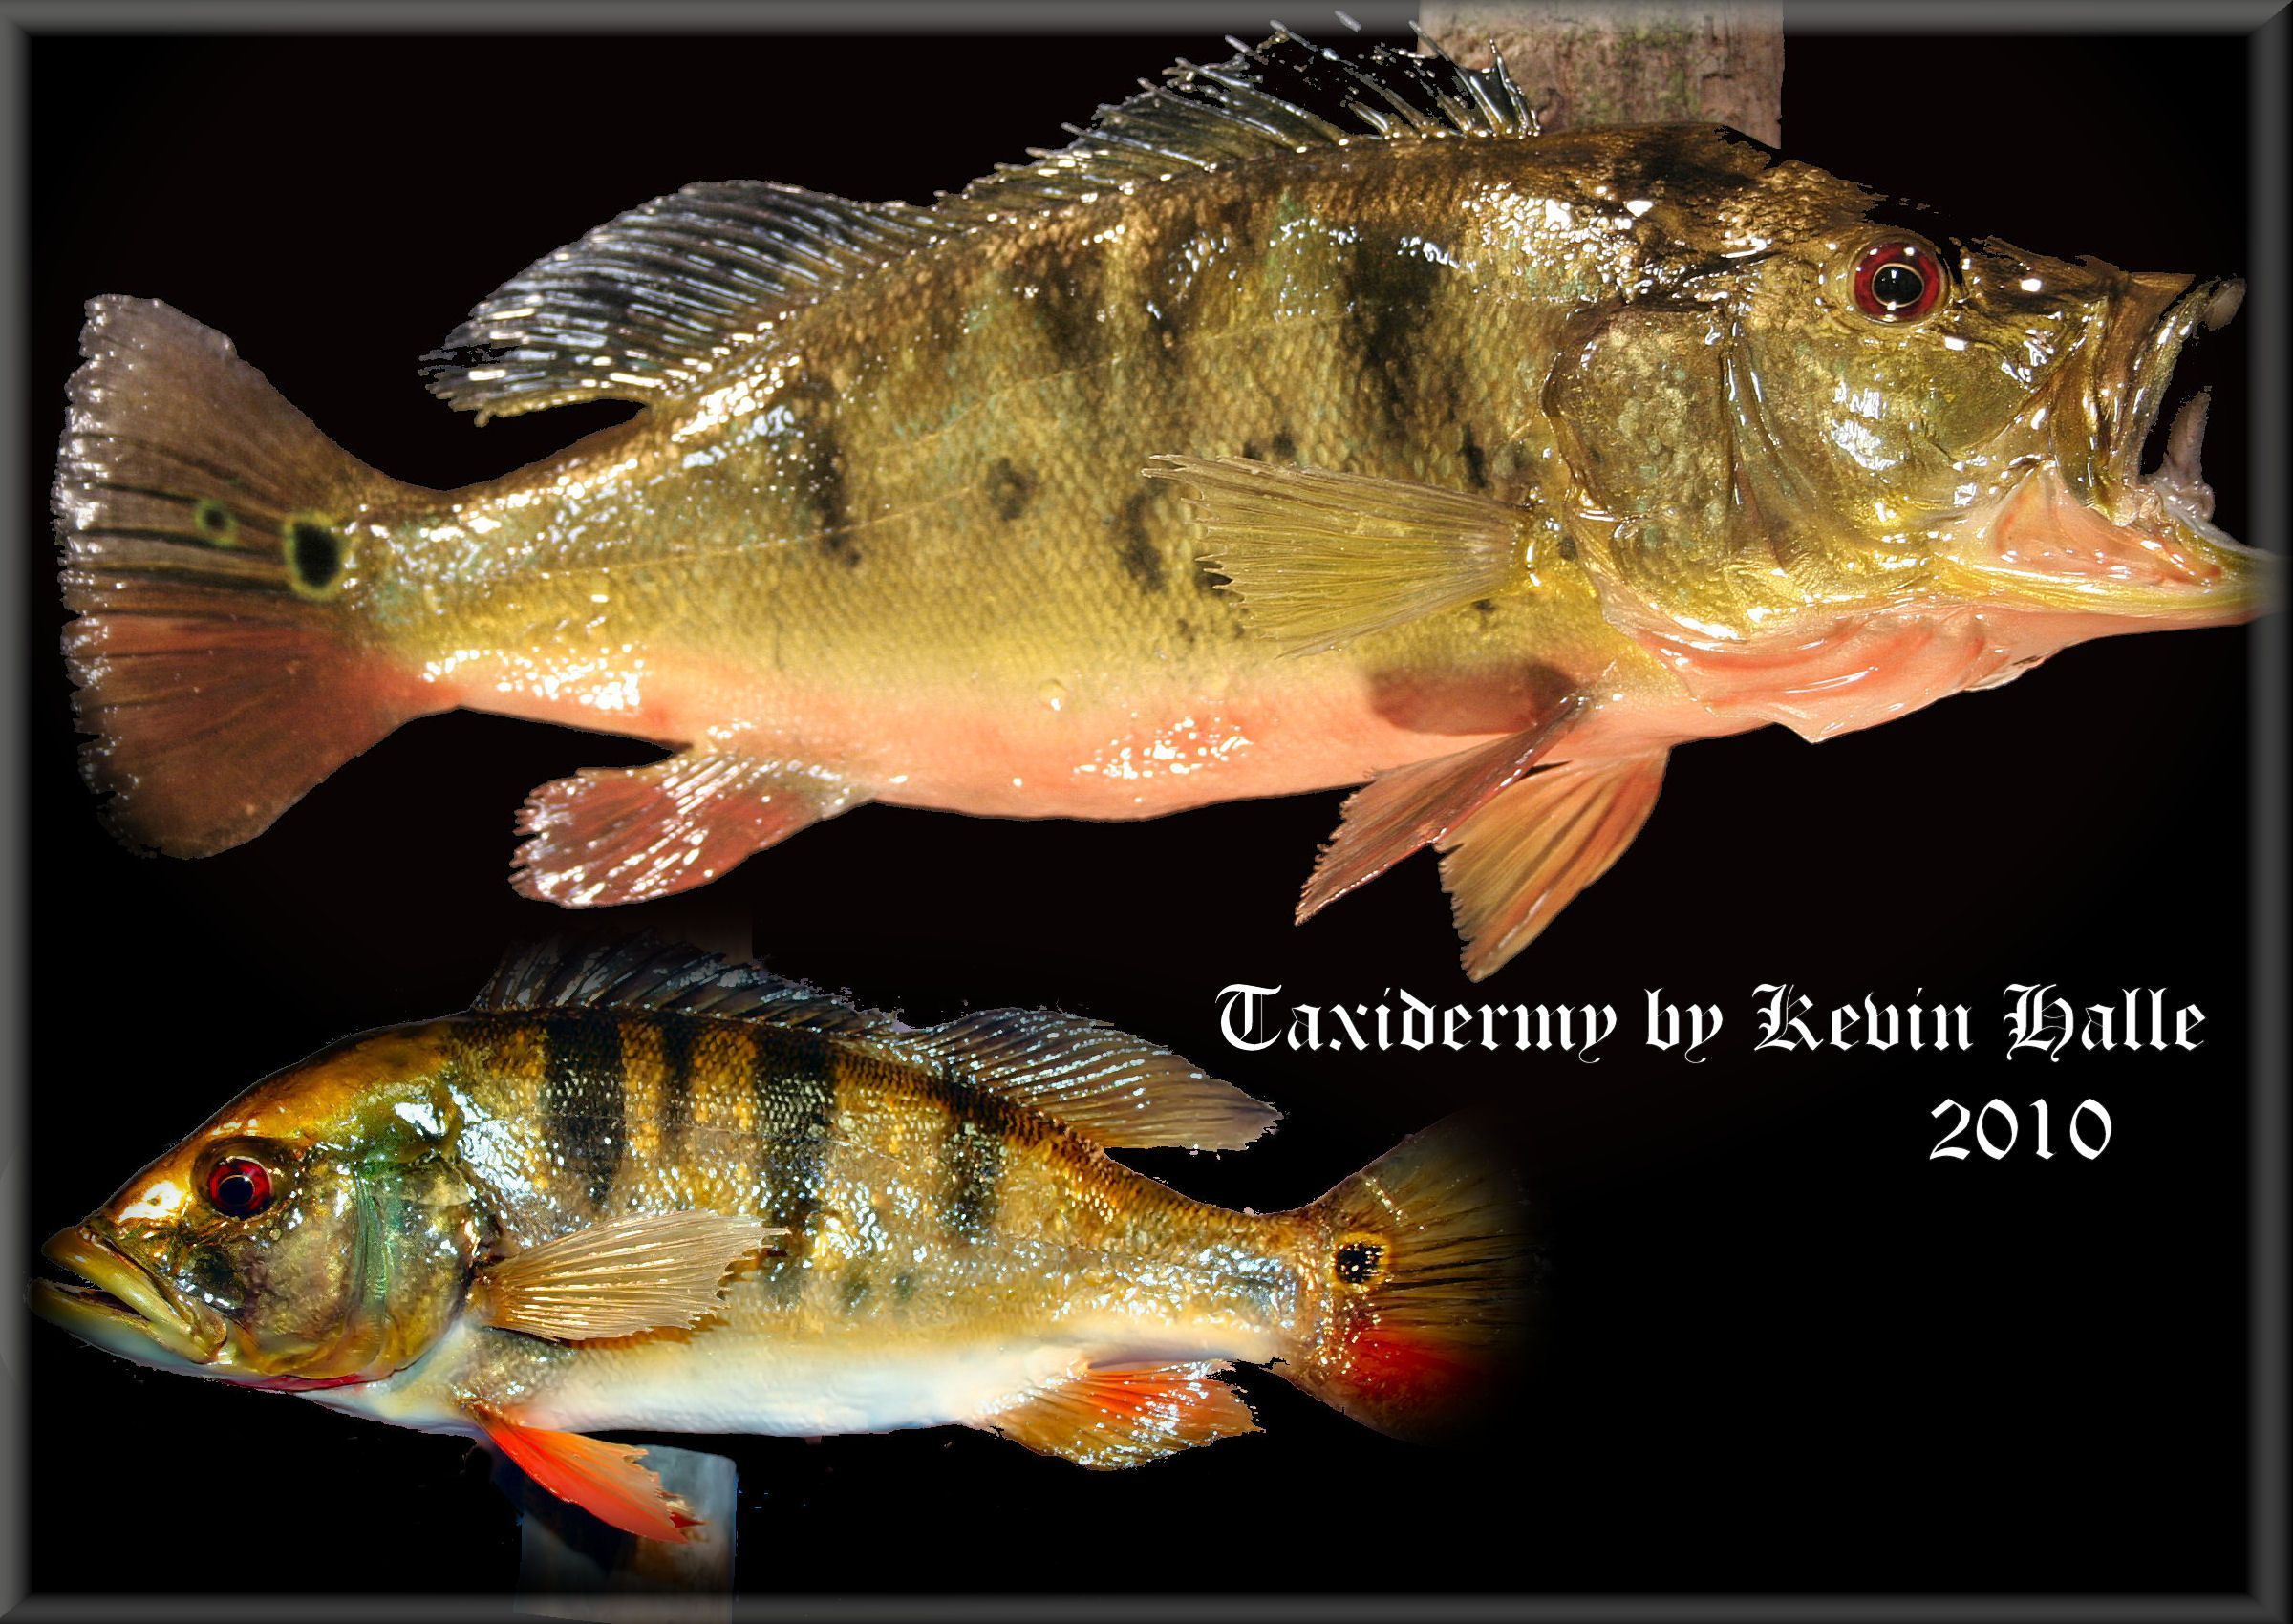 Freshwater fish of florida -  Thumbnail Image Of A Peacock Bass Freshwater Fish Taxidermy By Kevin Halle